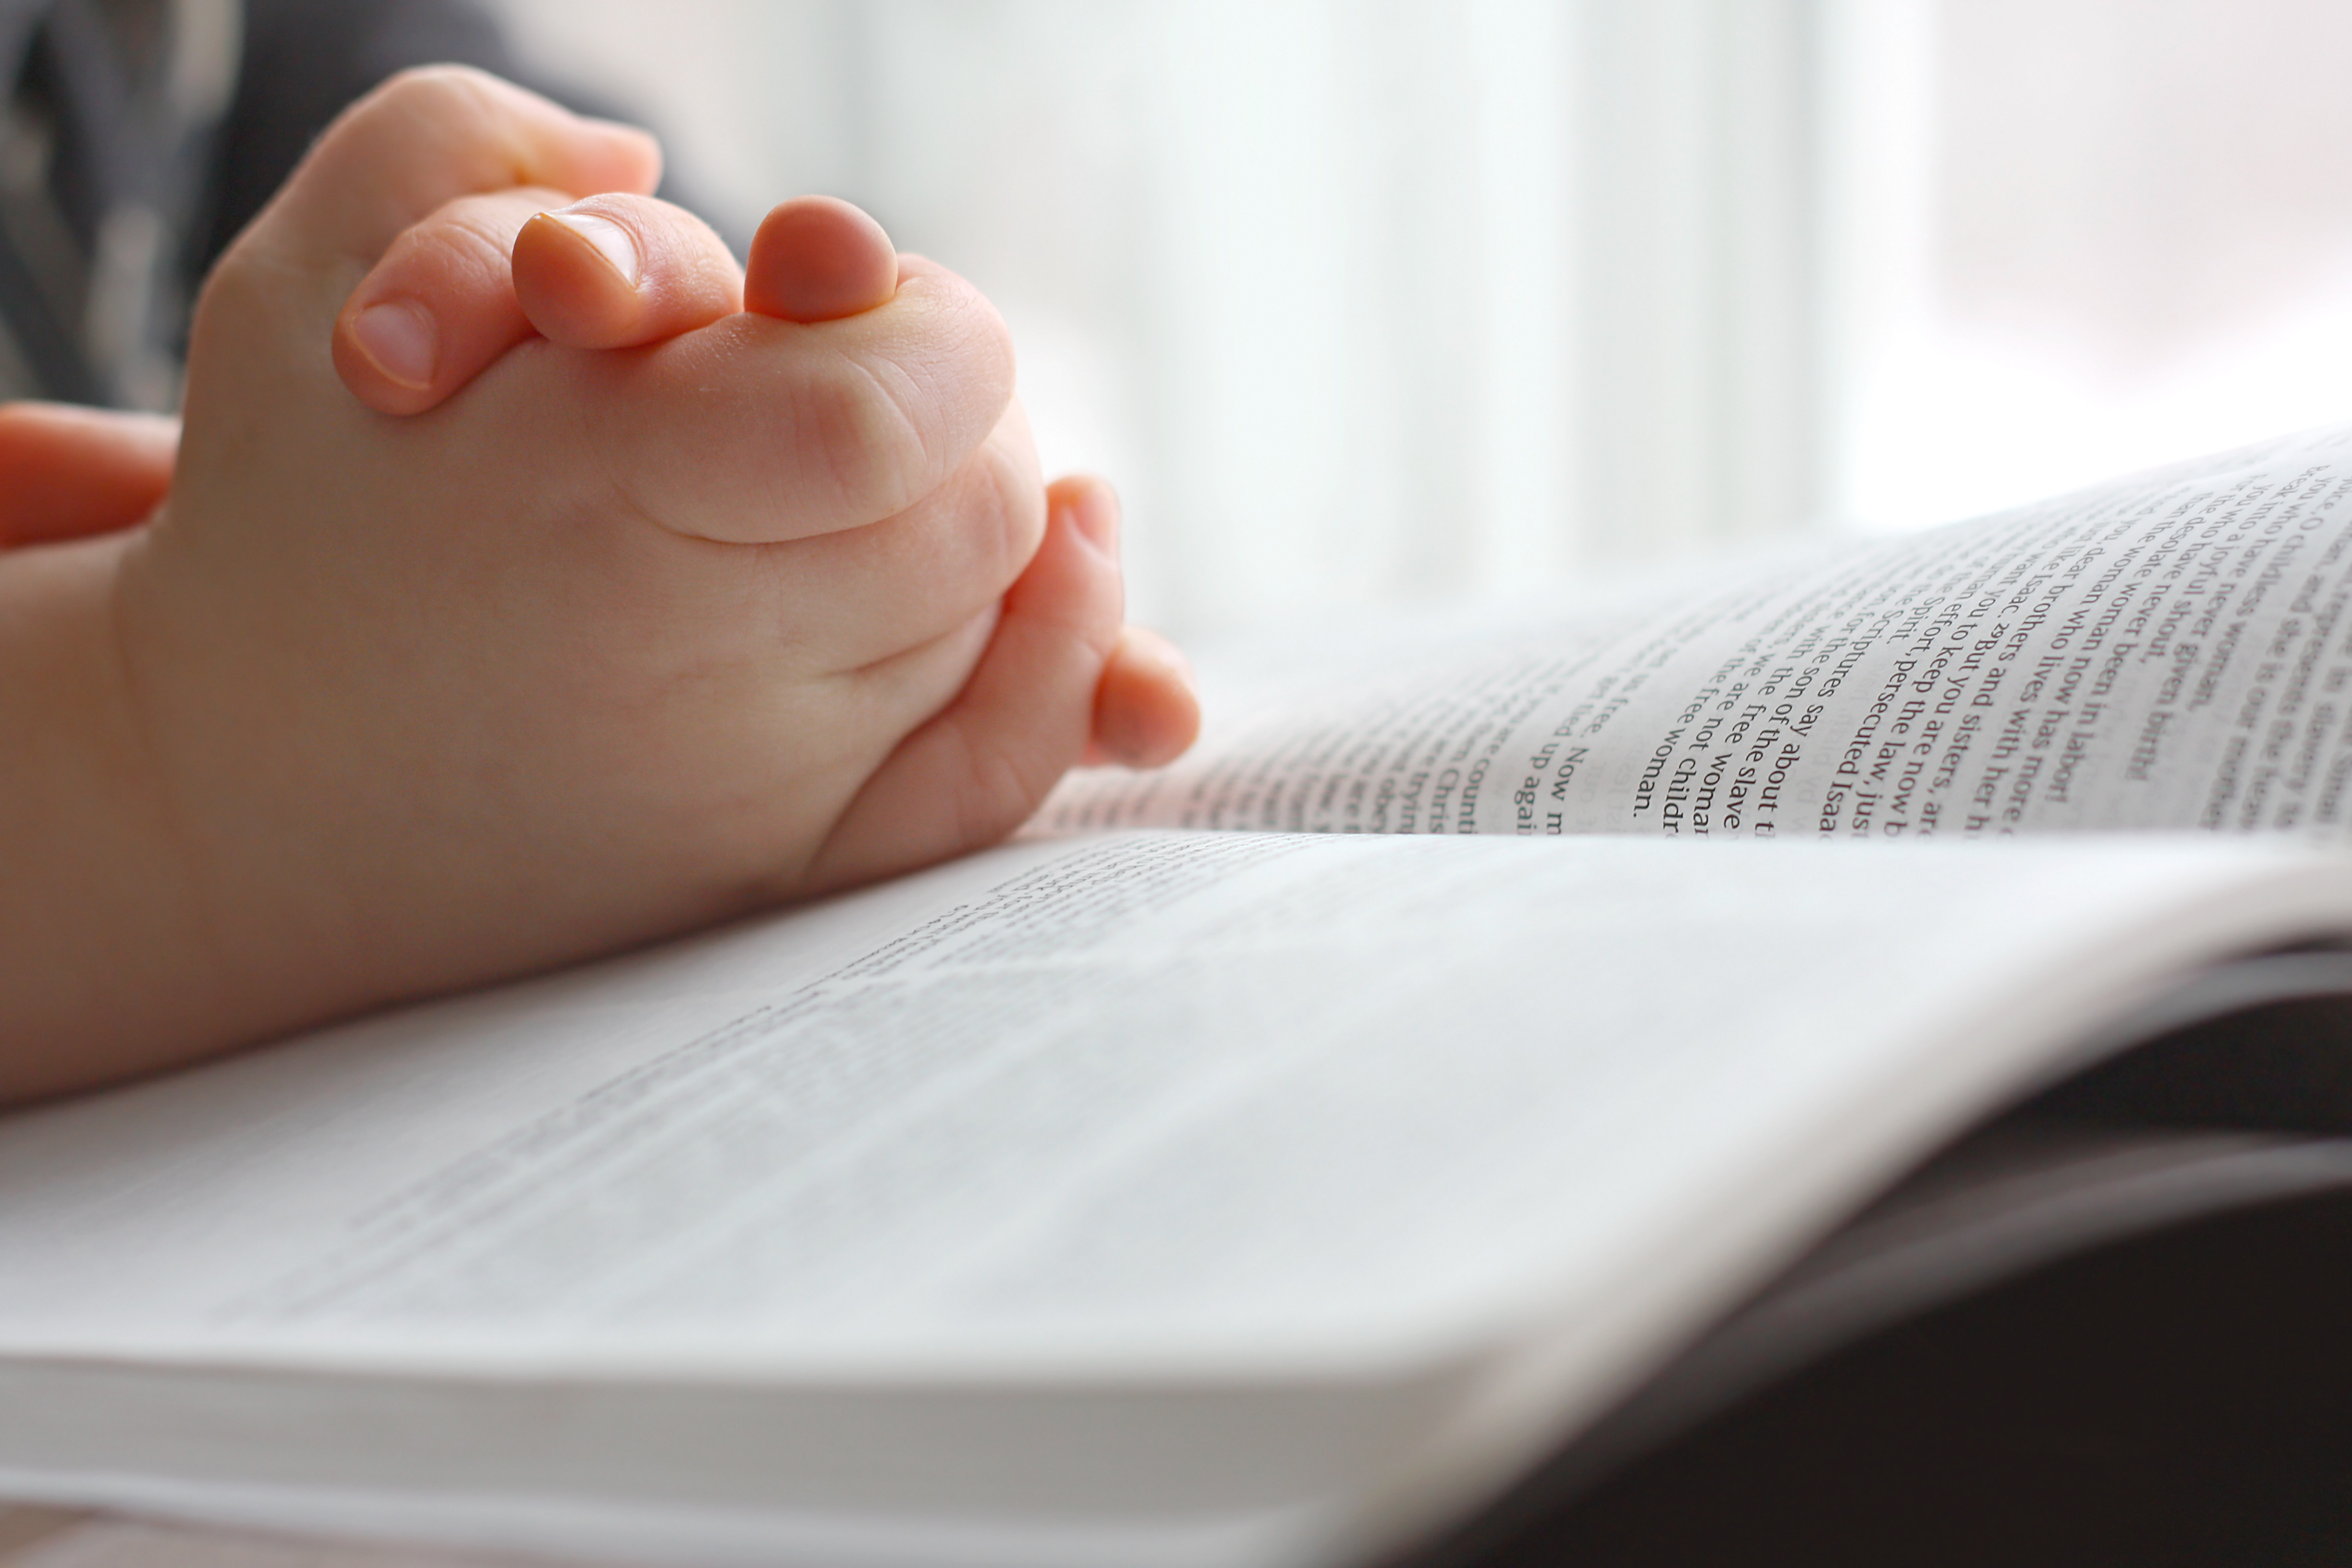 A student prays over the Bible. Shutterstock image via user Christin Lola